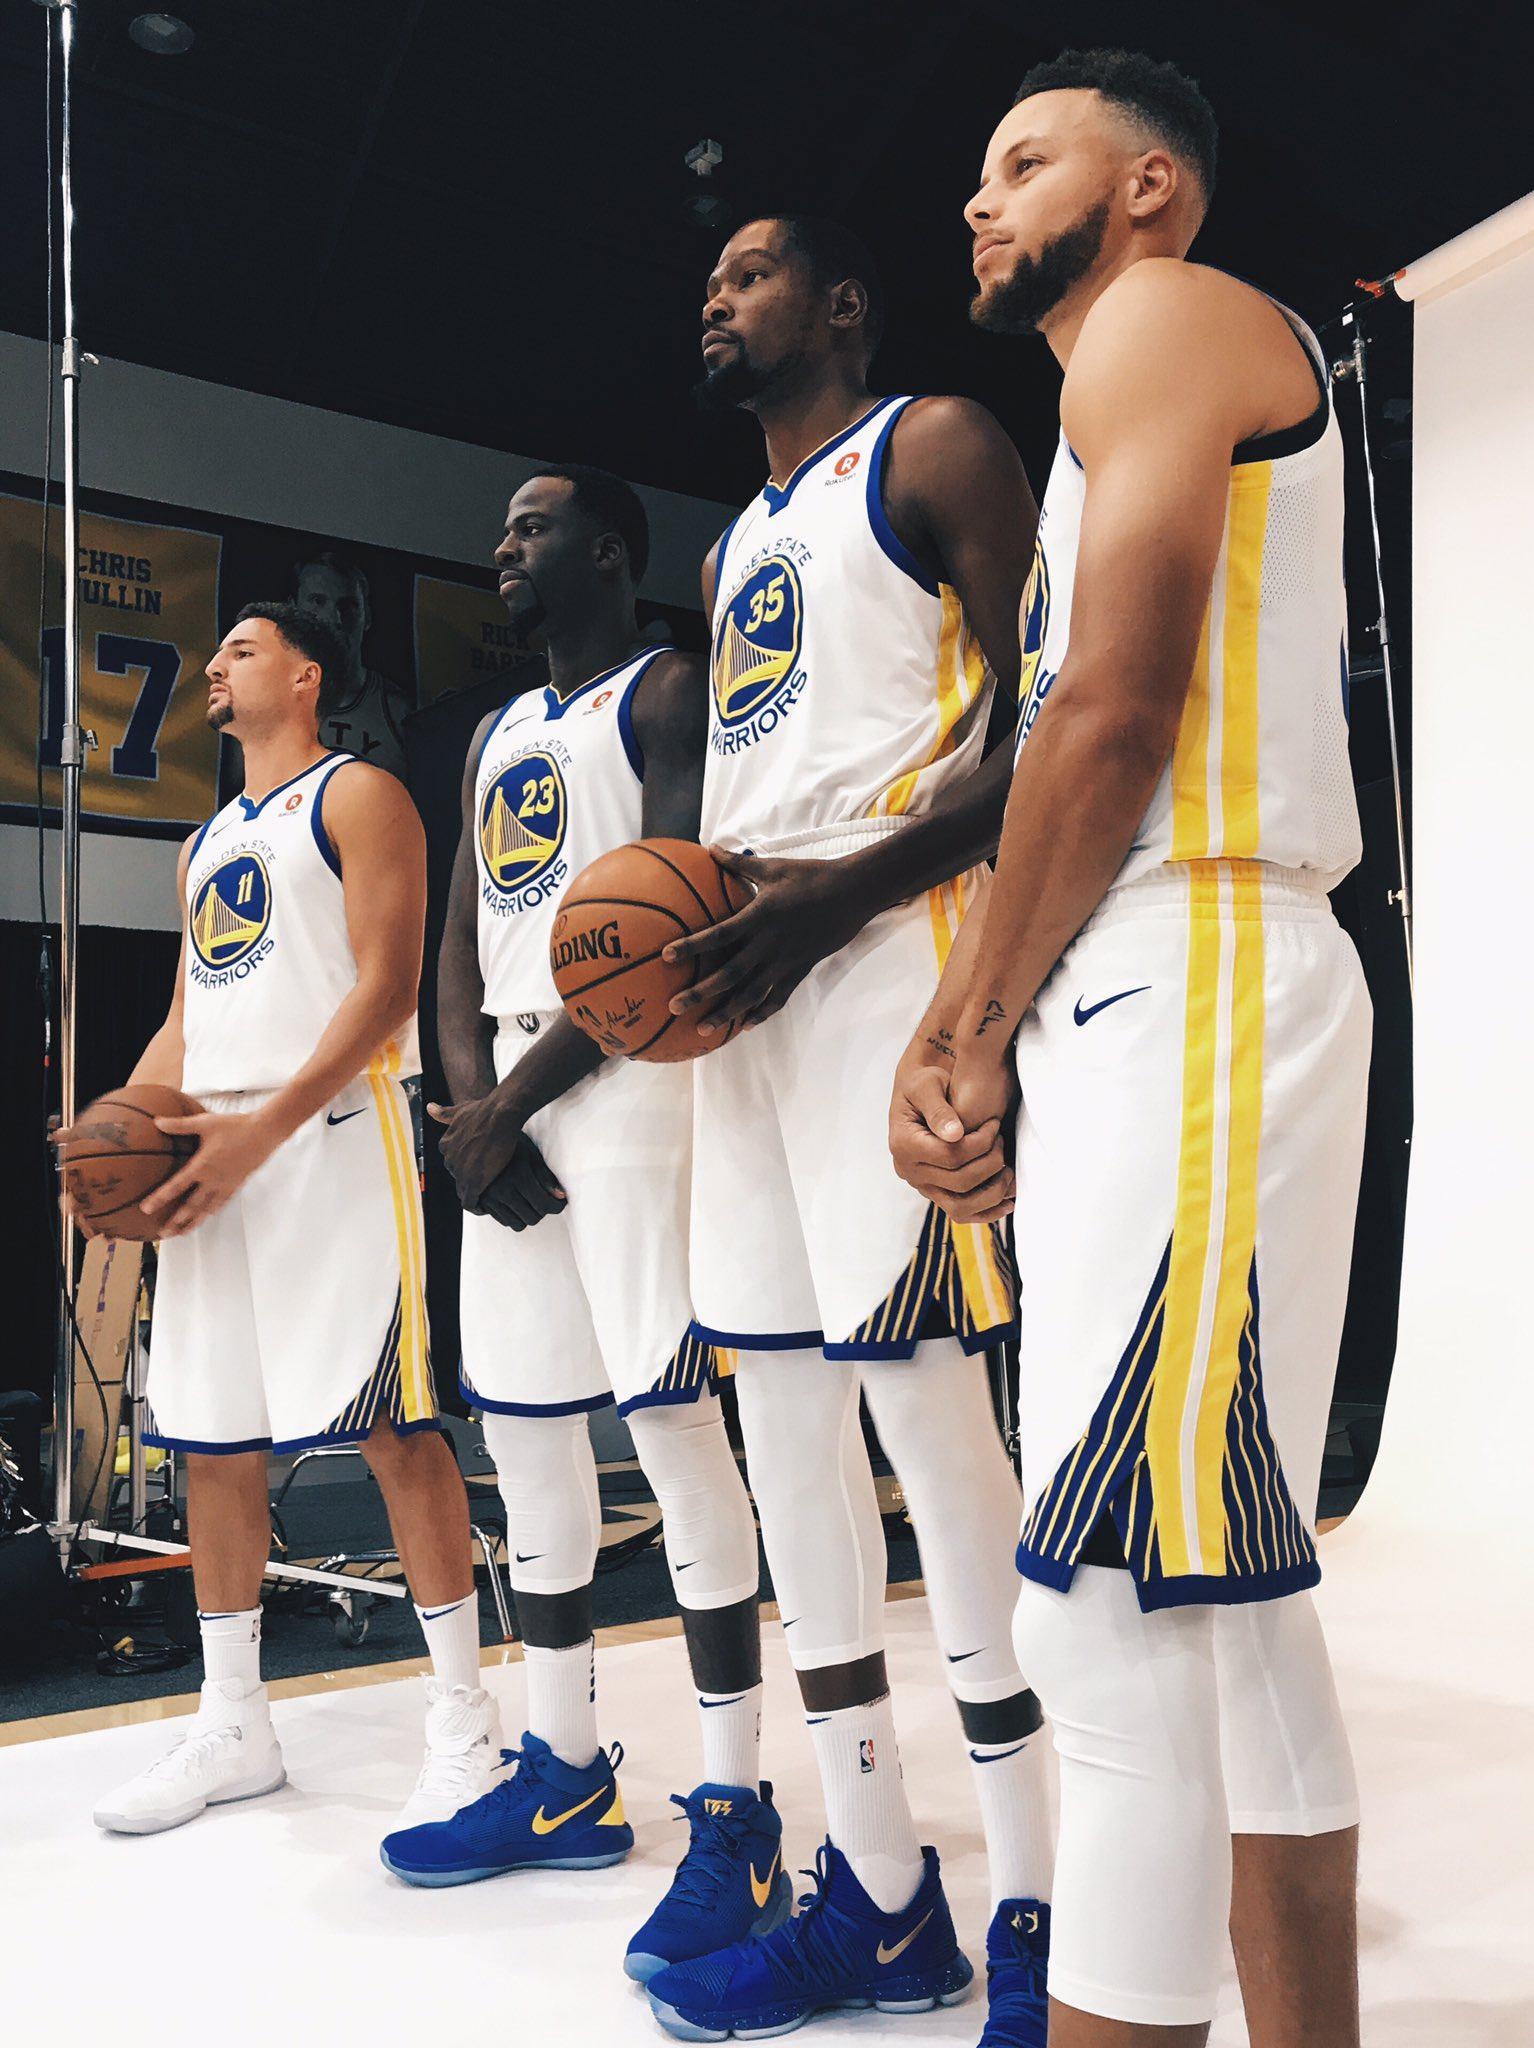 We back. #DubNation #GSWMediaDay https://t.co/uS3MY2zn8E